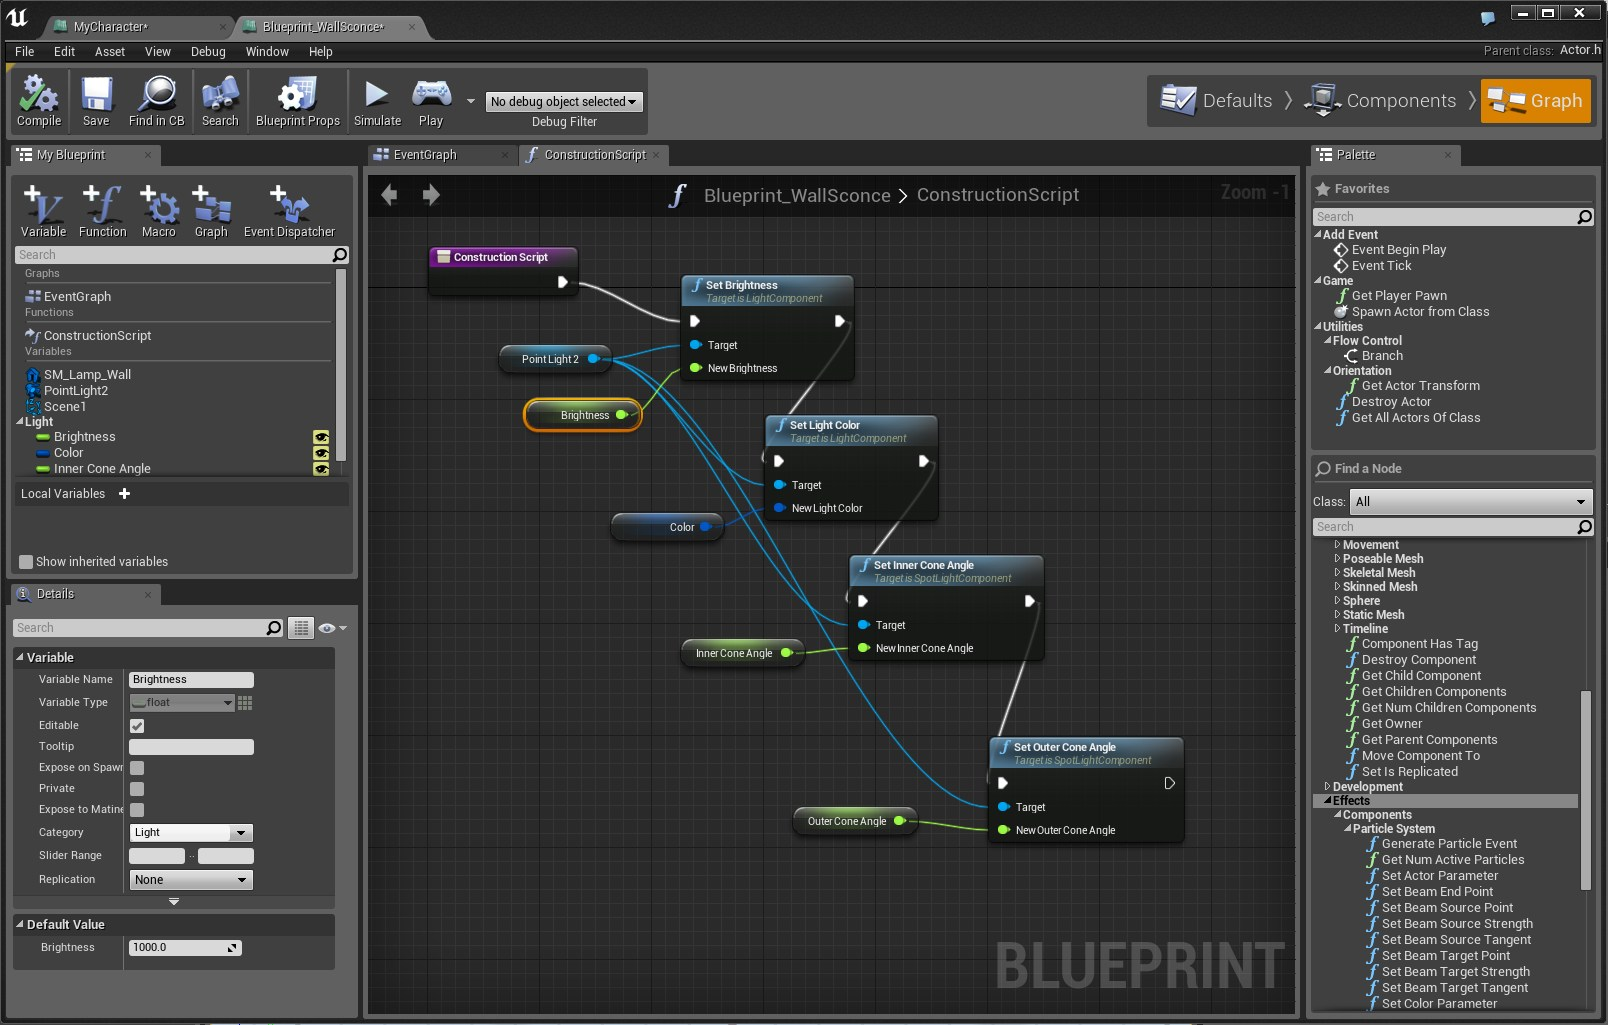 Blueprint editor image unreal engine 4 games indie db add media report rss blueprint editor view original malvernweather Image collections